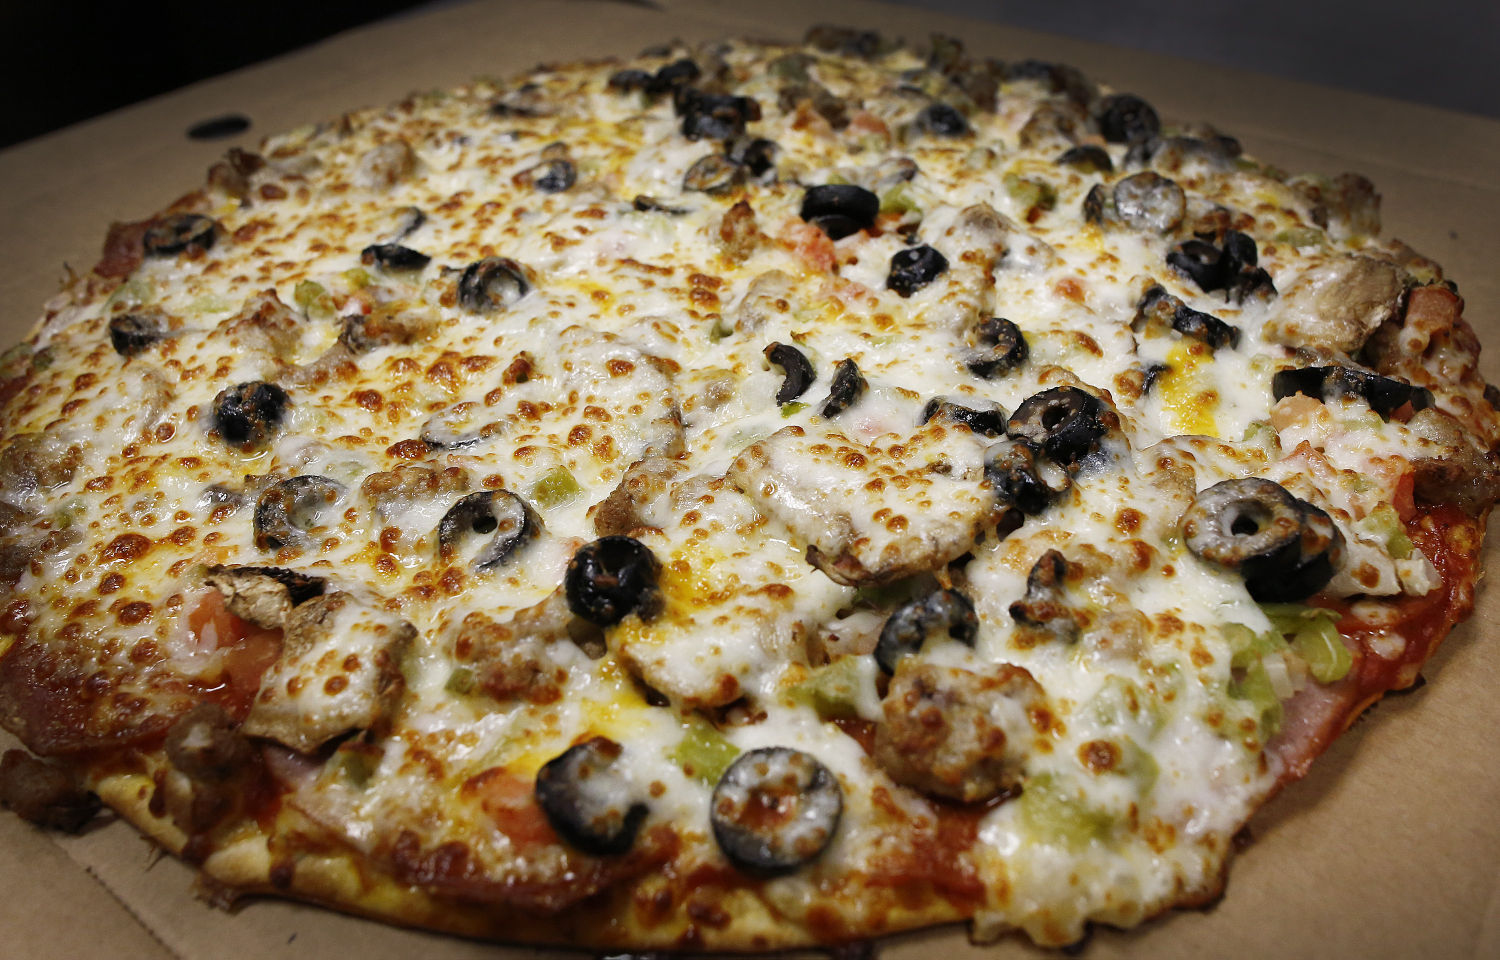 Pizza Family Braunschweig South Sioux Pizzeria Shows Late Night Food Who S Boss Weekender